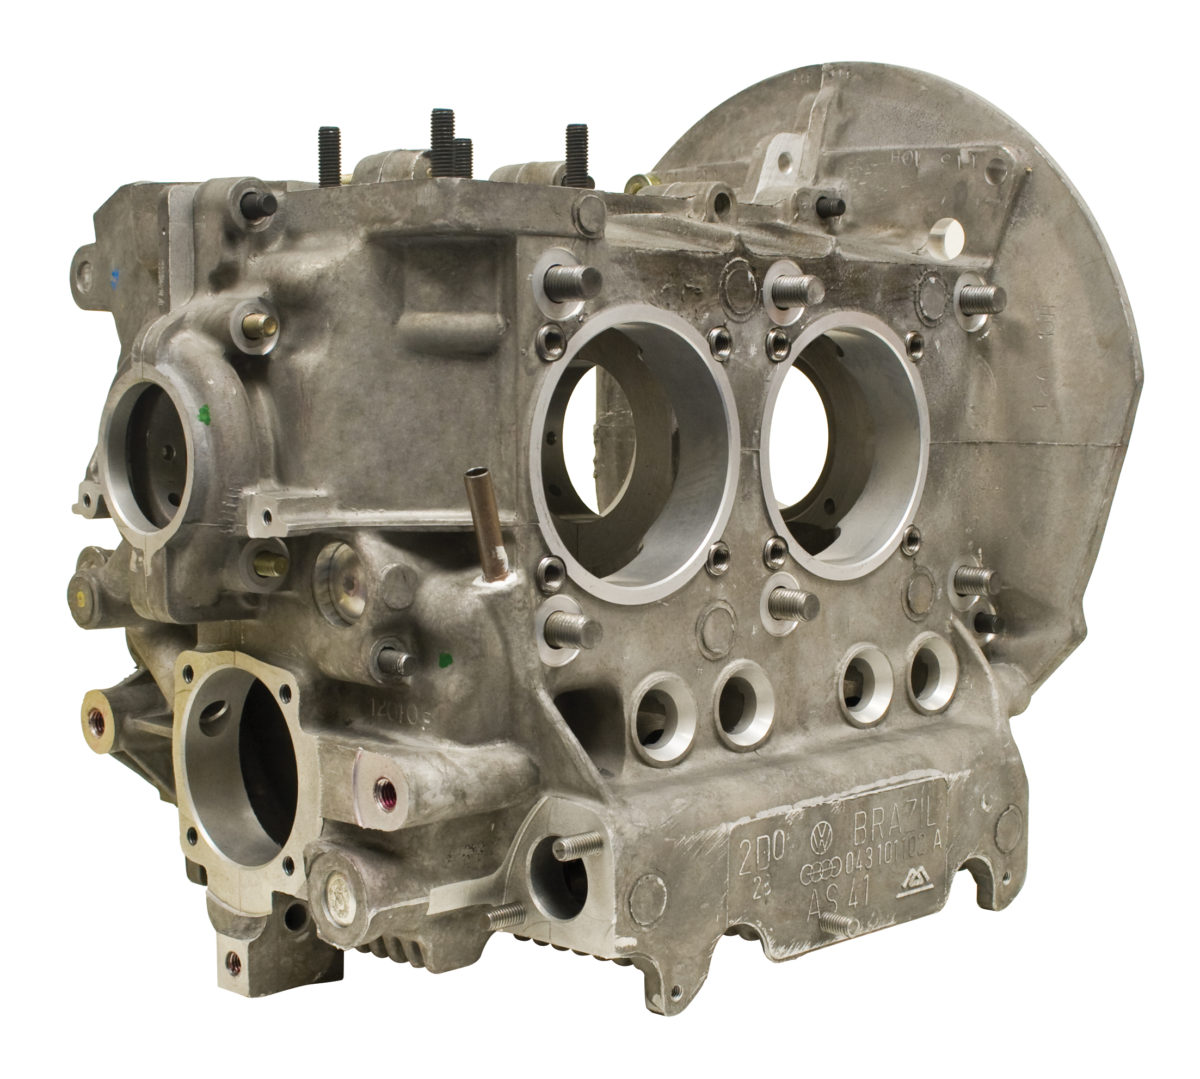 Vw Bug Engine Case For Sale: Rancho Performance Centers